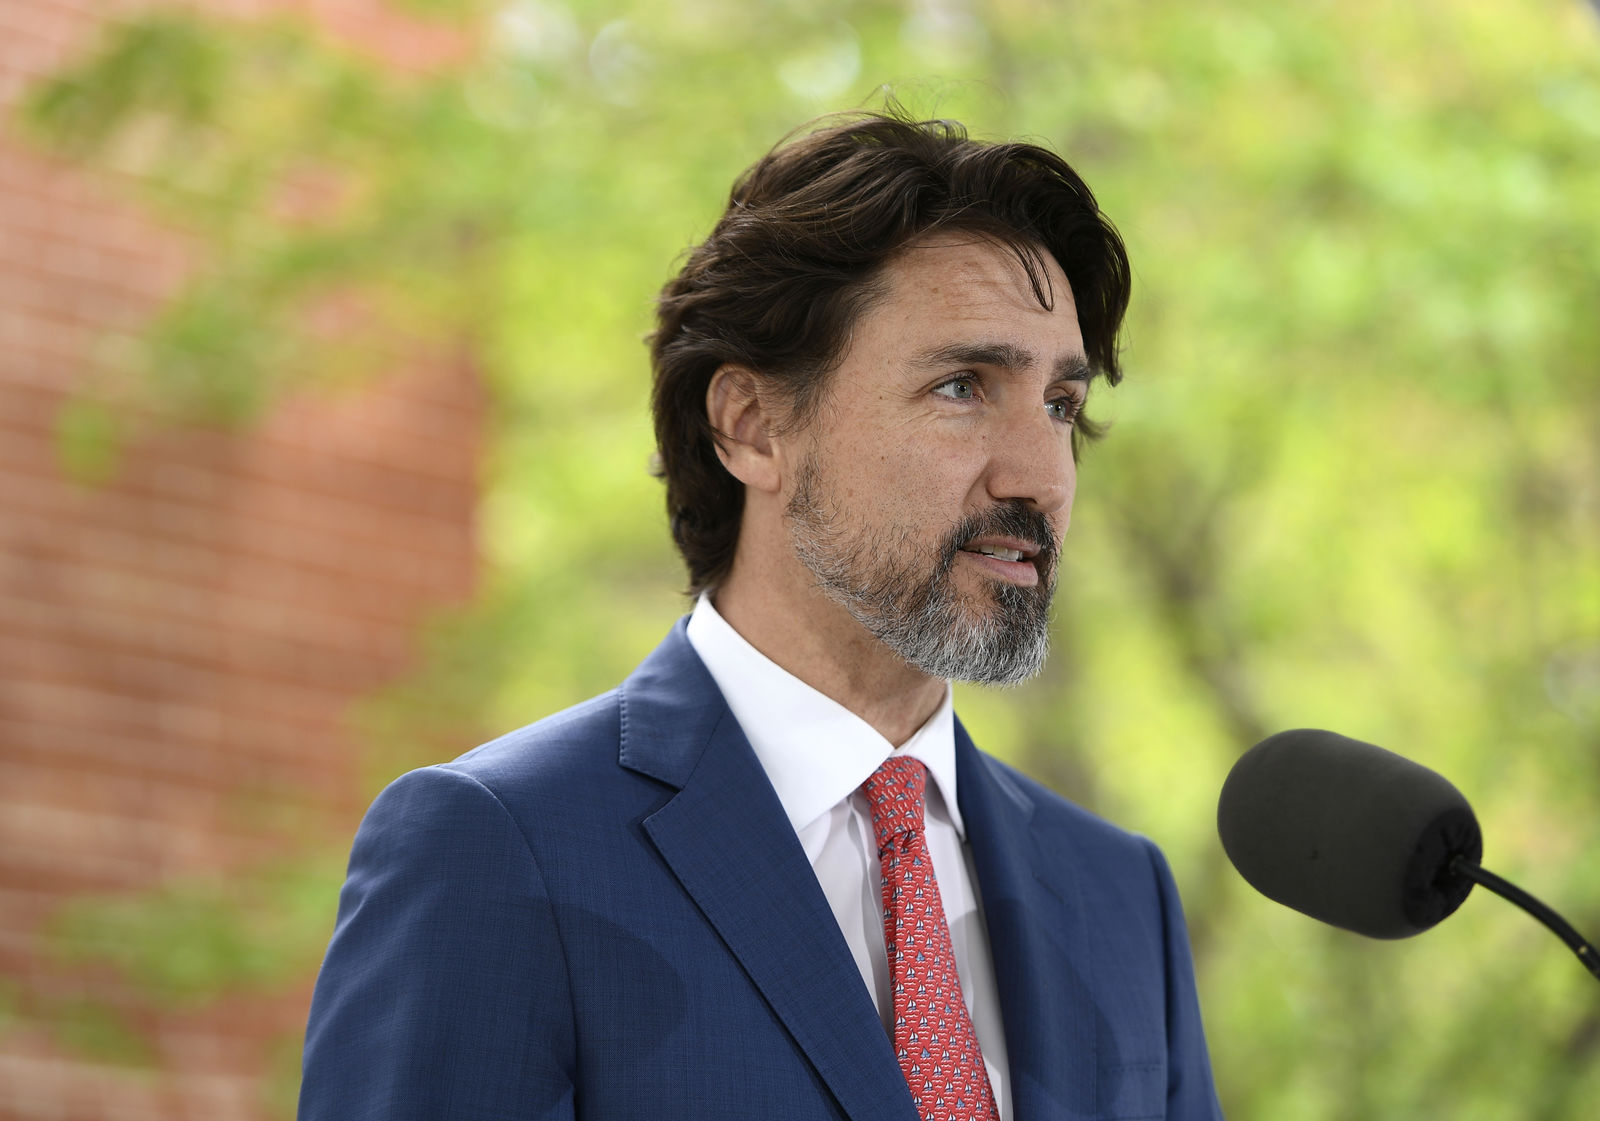 FILE - In this May 19, 2020, file photo, Canadian Prime Minister Justin Trudeau speaks during his daily news conference on the COVID-19 pandemic outside his residence at Rideau Cottage in Ottawa, Ontario. (Justin Tang/The Canadian Press via AP, File)